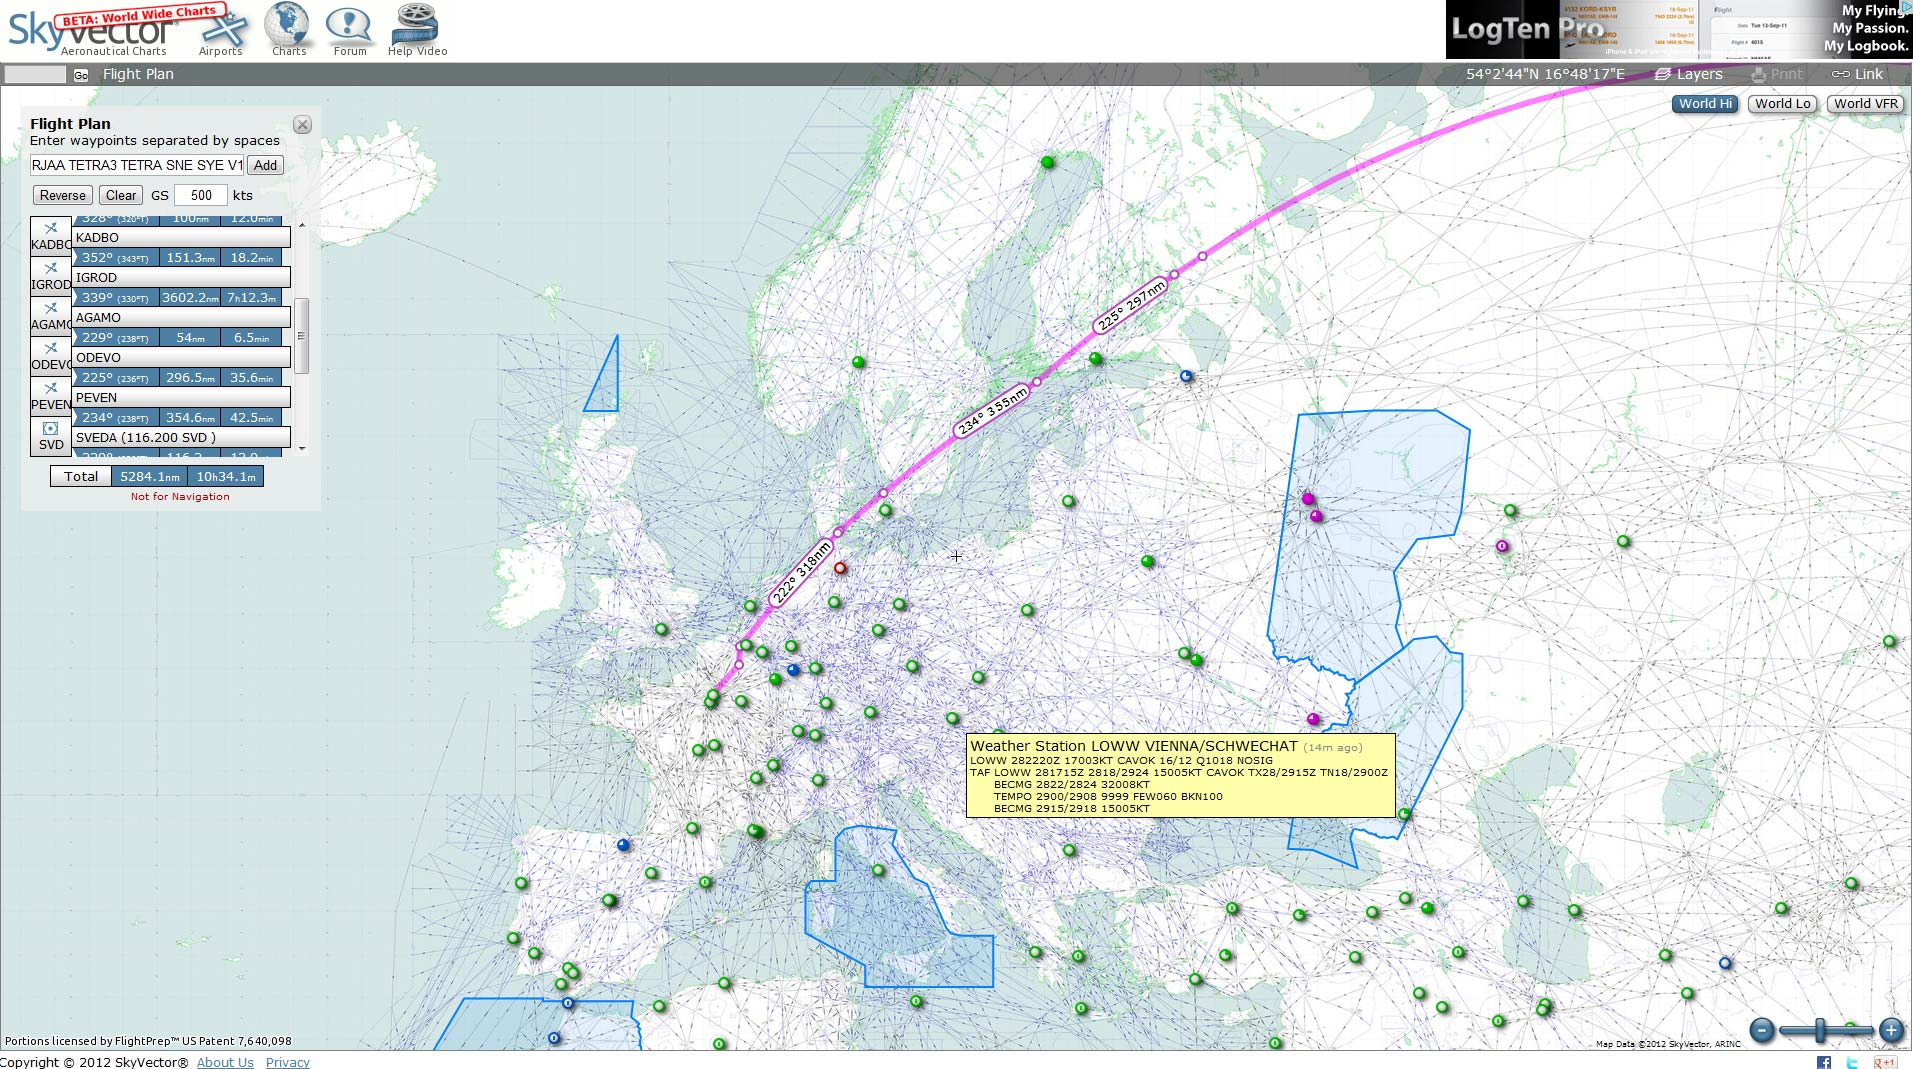 SkyVector Sectional Charts Flight Planning